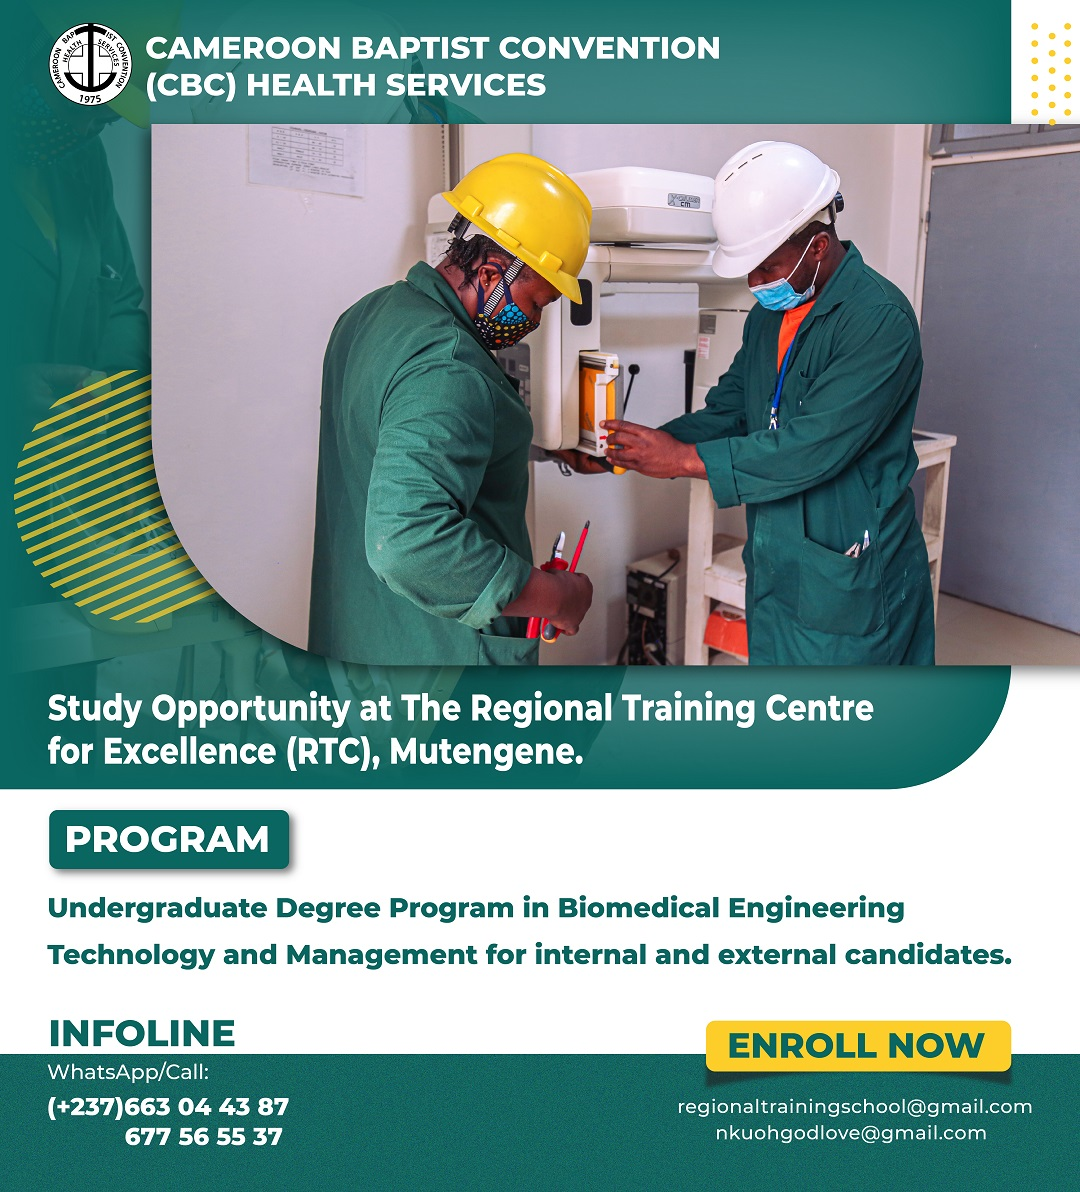 Study Opportunity at CBCHS Regional Training Centre For Excellence